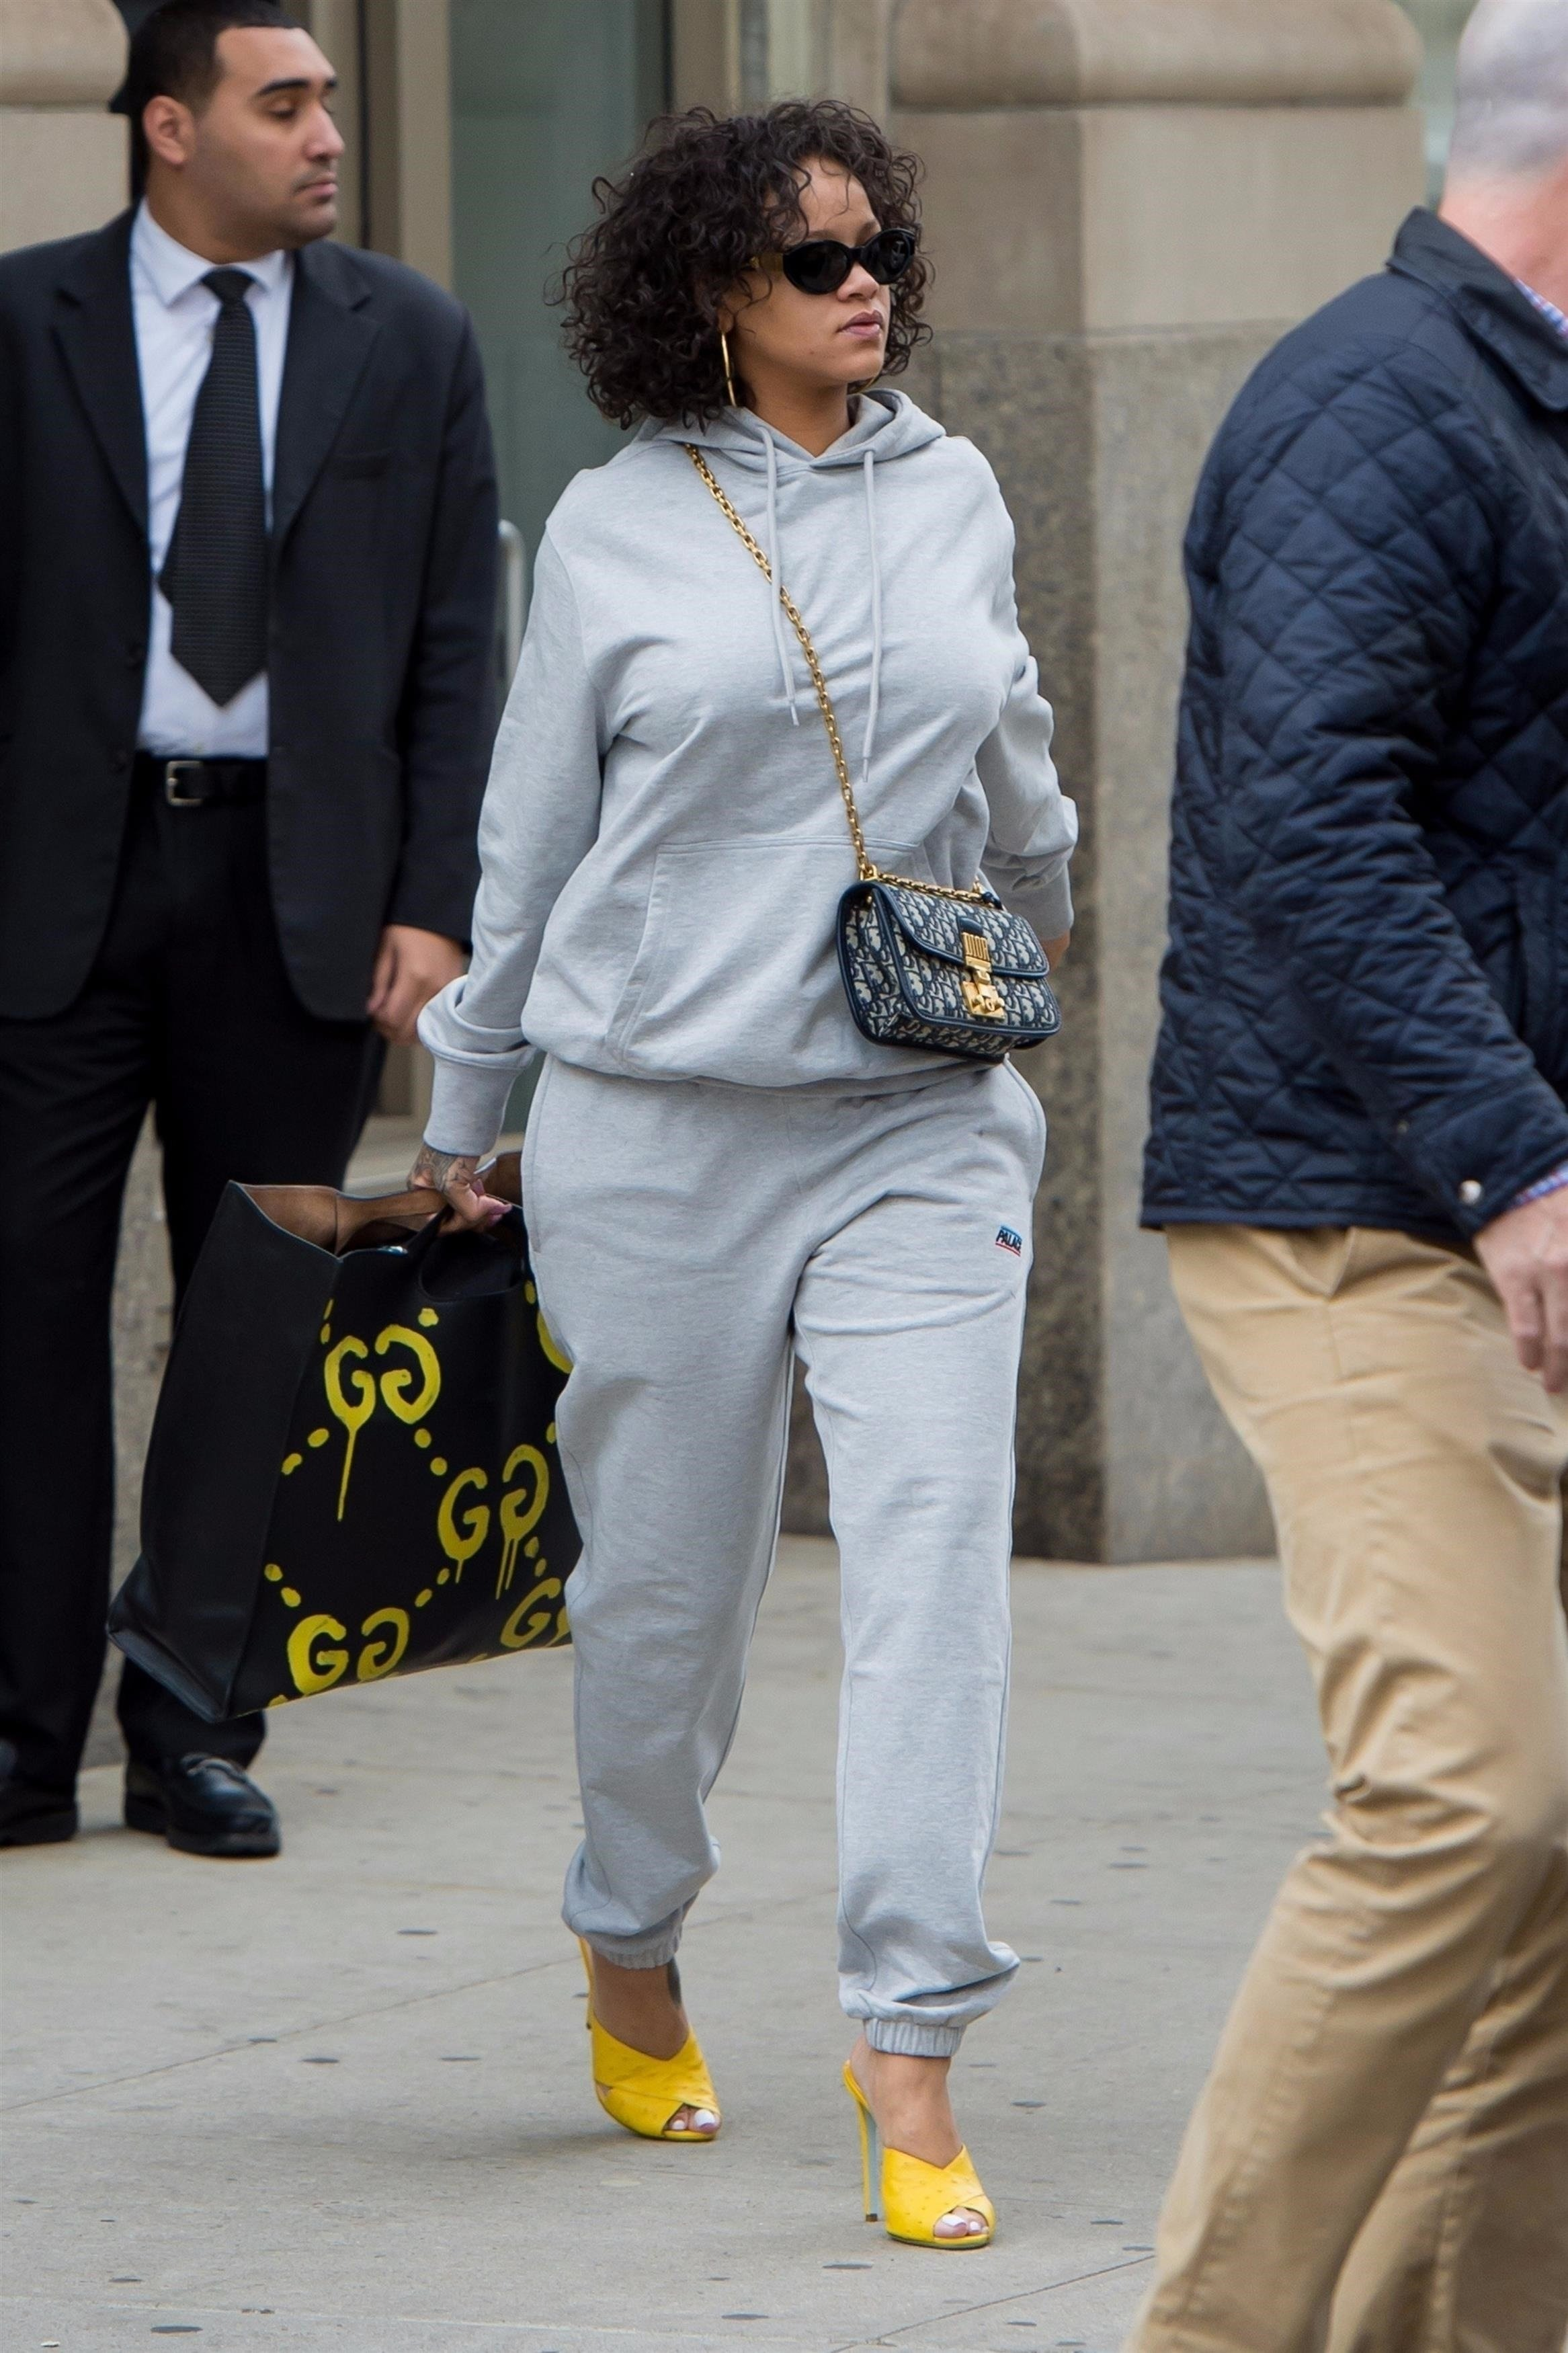 New York, NY  - *EXCLUSIVE*  - Pop star Rihanna keeps things comfy but stylish while stepping out in a grey sweatsuit paired with yellow open toe heels in New York City.  Pictured: Rihanna  BACKGRID USA 26 OCTOBER 2017, Image: 353950630, License: Rights-managed, Restrictions: , Model Release: no, Credit line: Profimedia, AKM-GSI